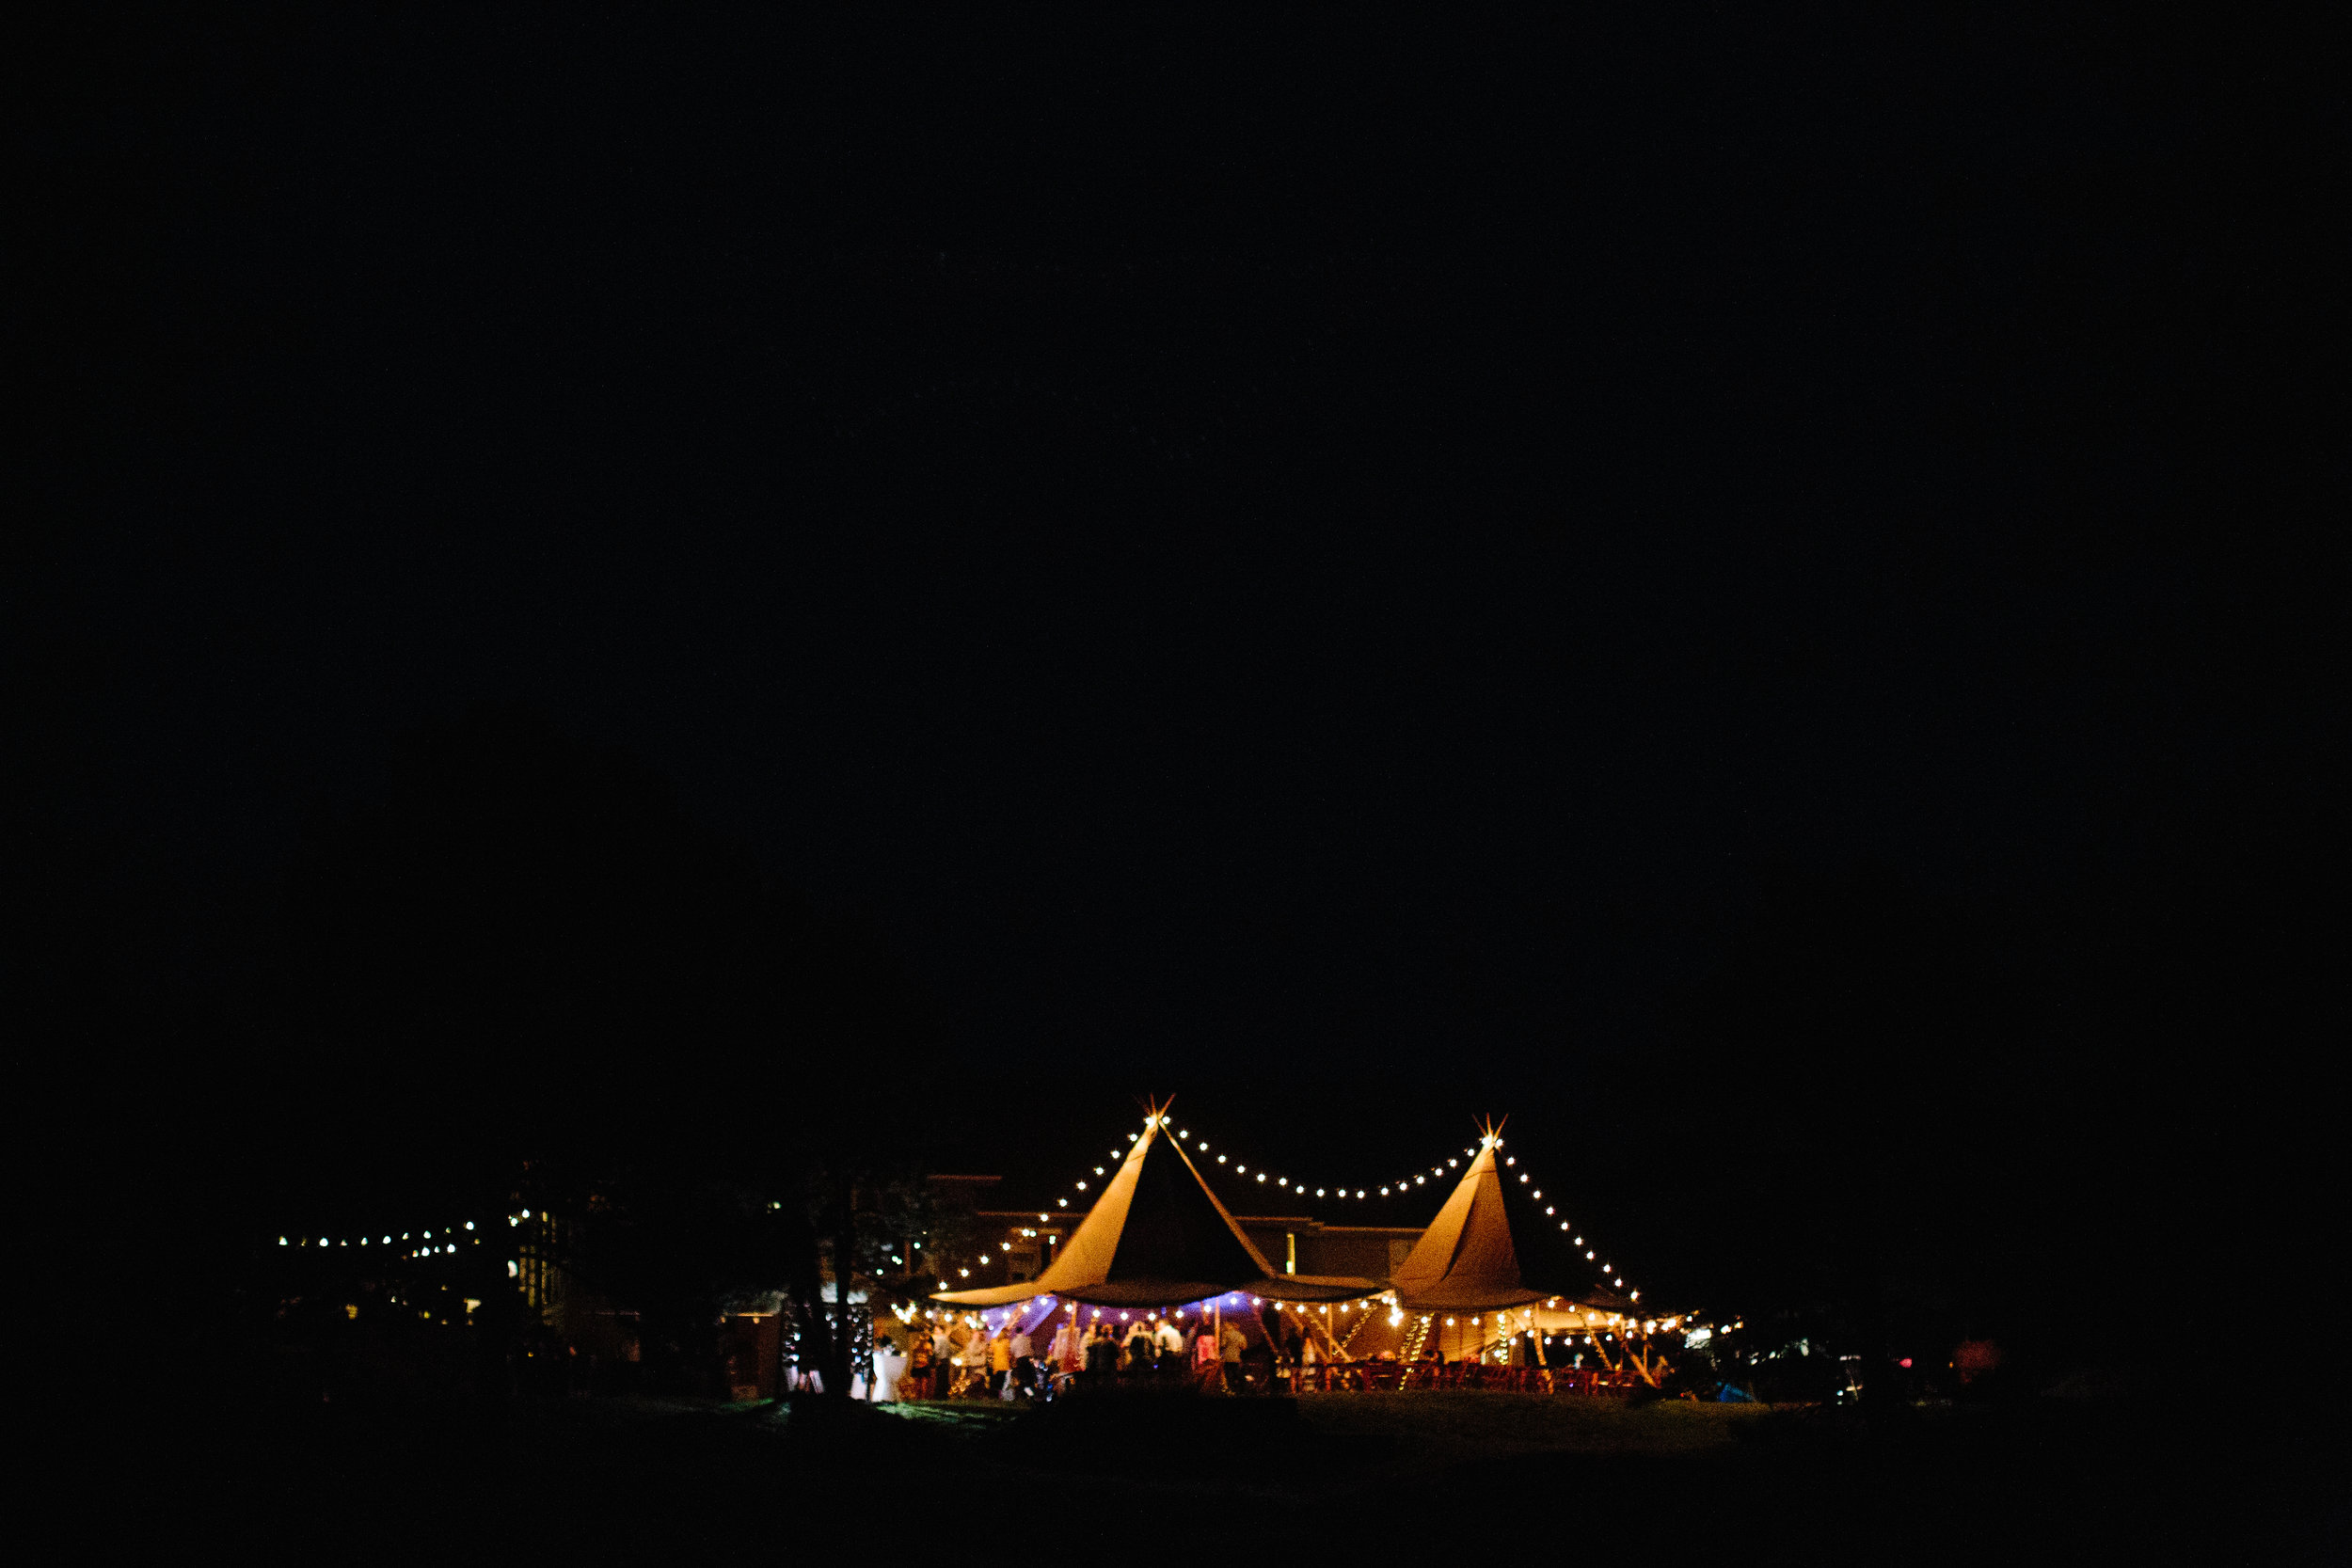 Tents at night.jpg